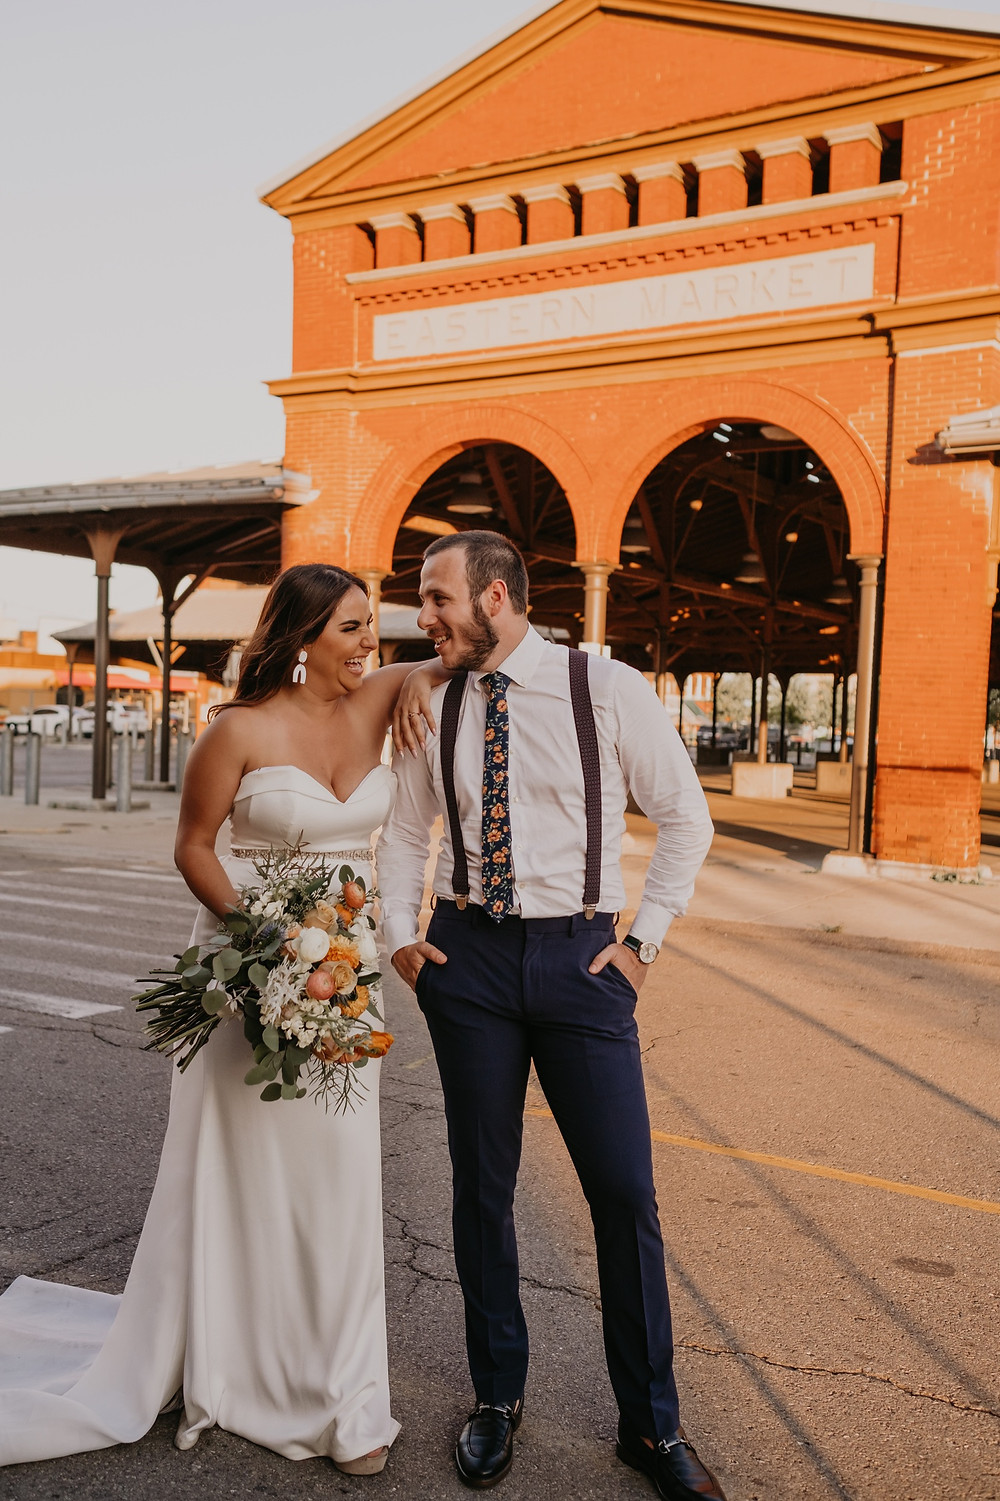 Bride and groom at Eastern Market Detroit pavilion. Photographed by Nicole Leanne Photography.